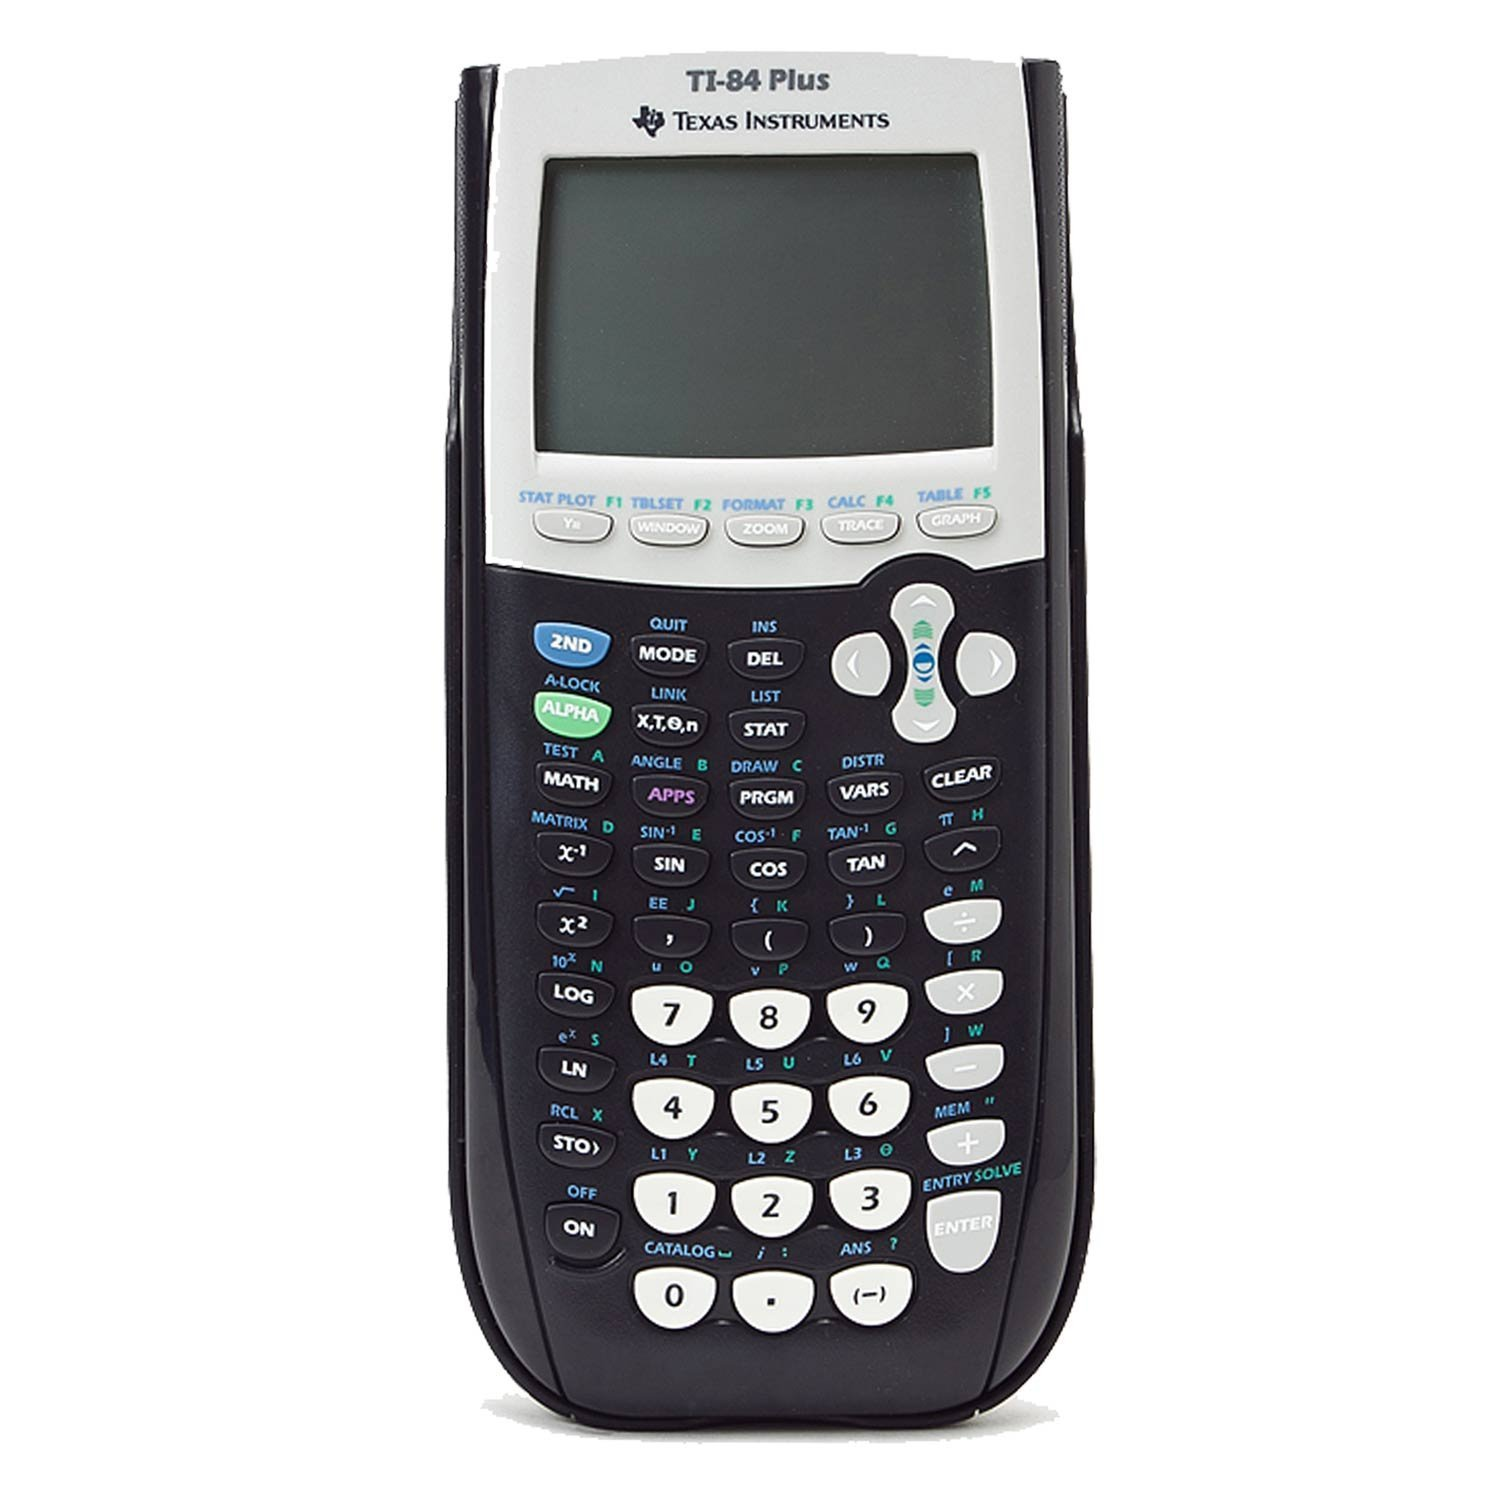 Texas Instruments Ti-84 plus Graphing calculator - Black by Texas Instruments